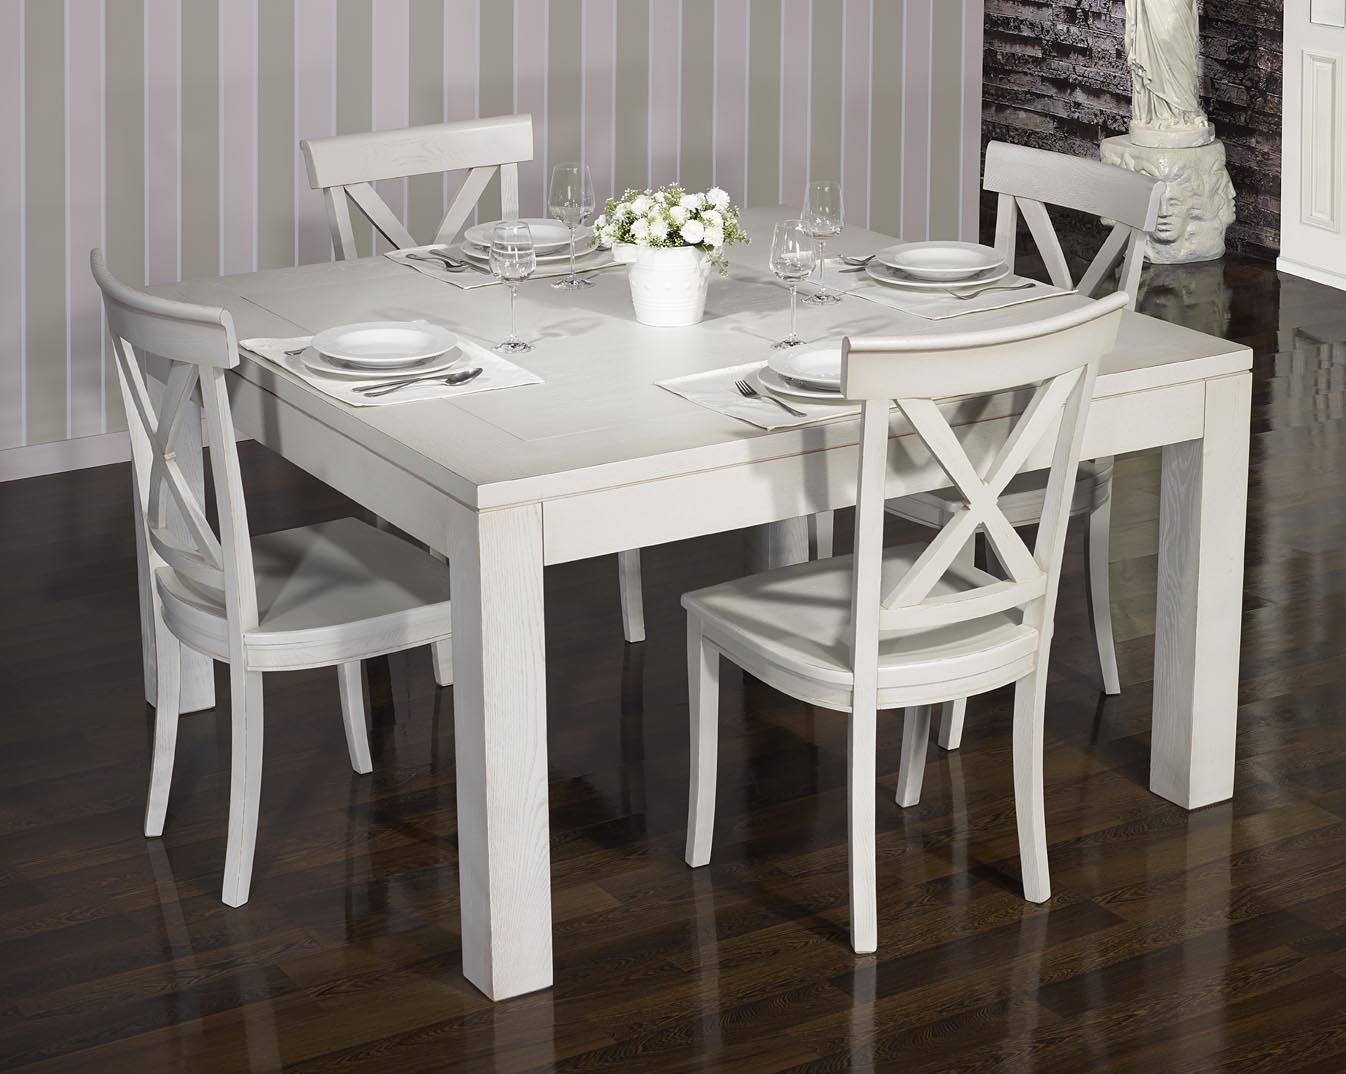 table de salle a manger 140 140 contemporaine realisee en chene finition chene brosse gris perle